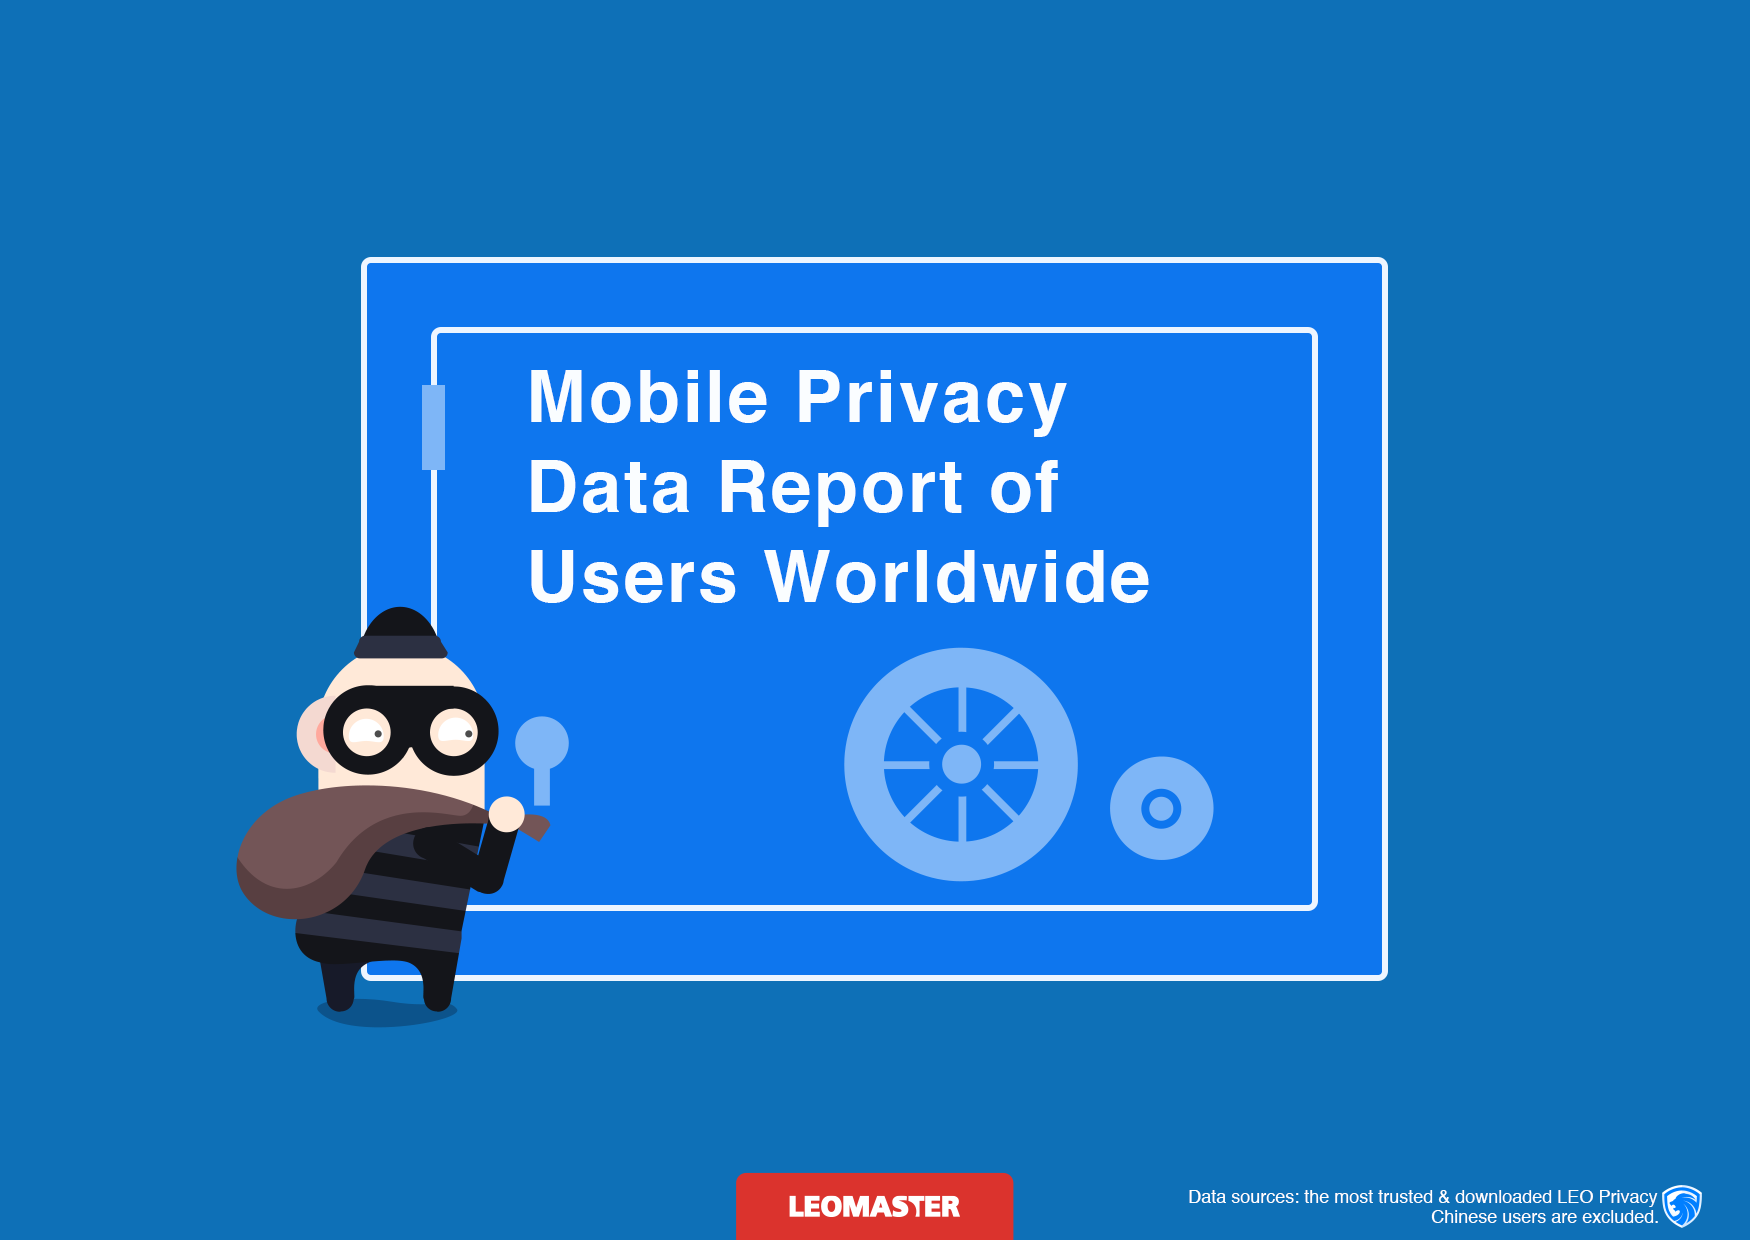 Leomaster Mobile Privacy Data Report - An Infographic